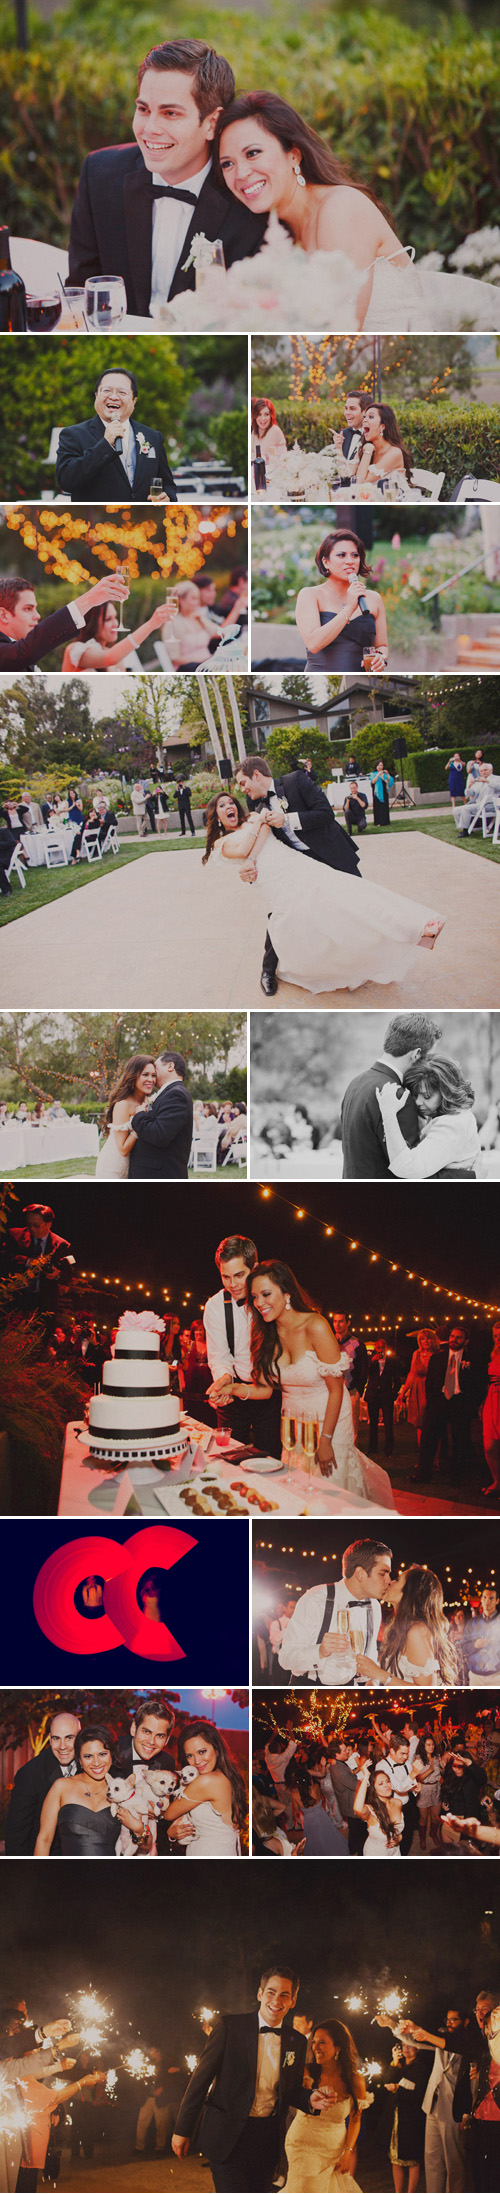 blush pink, dove gray, black and white Great Gatsby and Coco Chanel inspired wedding at Maravilla Gardens, California, photos by Christine Farah Photography